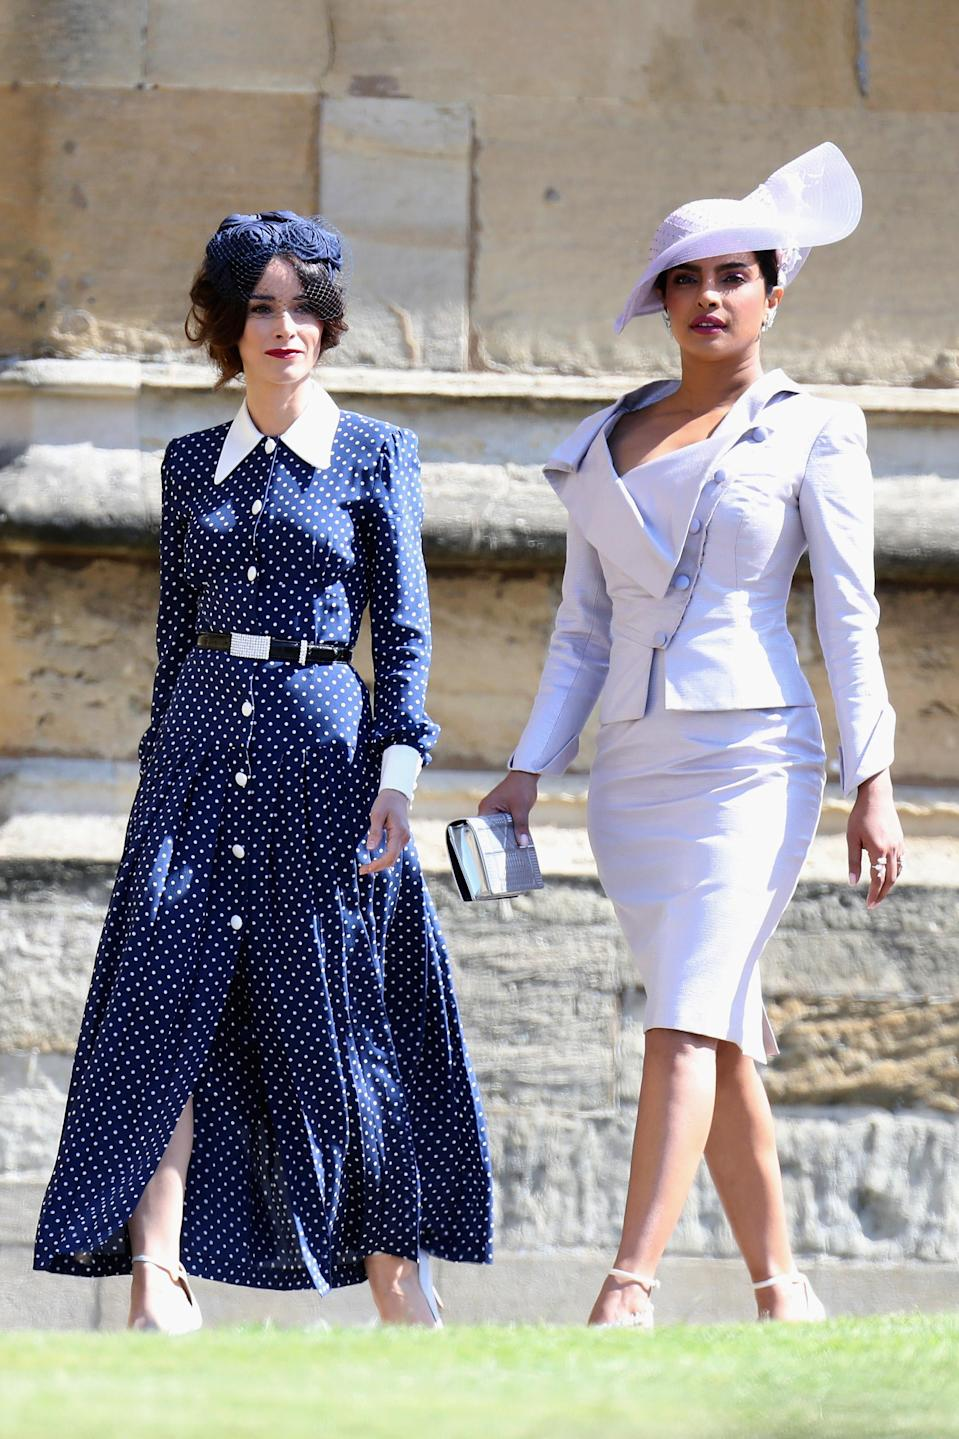 Priyanka Chopra famously attended the royal wedding – here, she is pictured with 'Suits' actress Abigail Spencer. Source: Getty